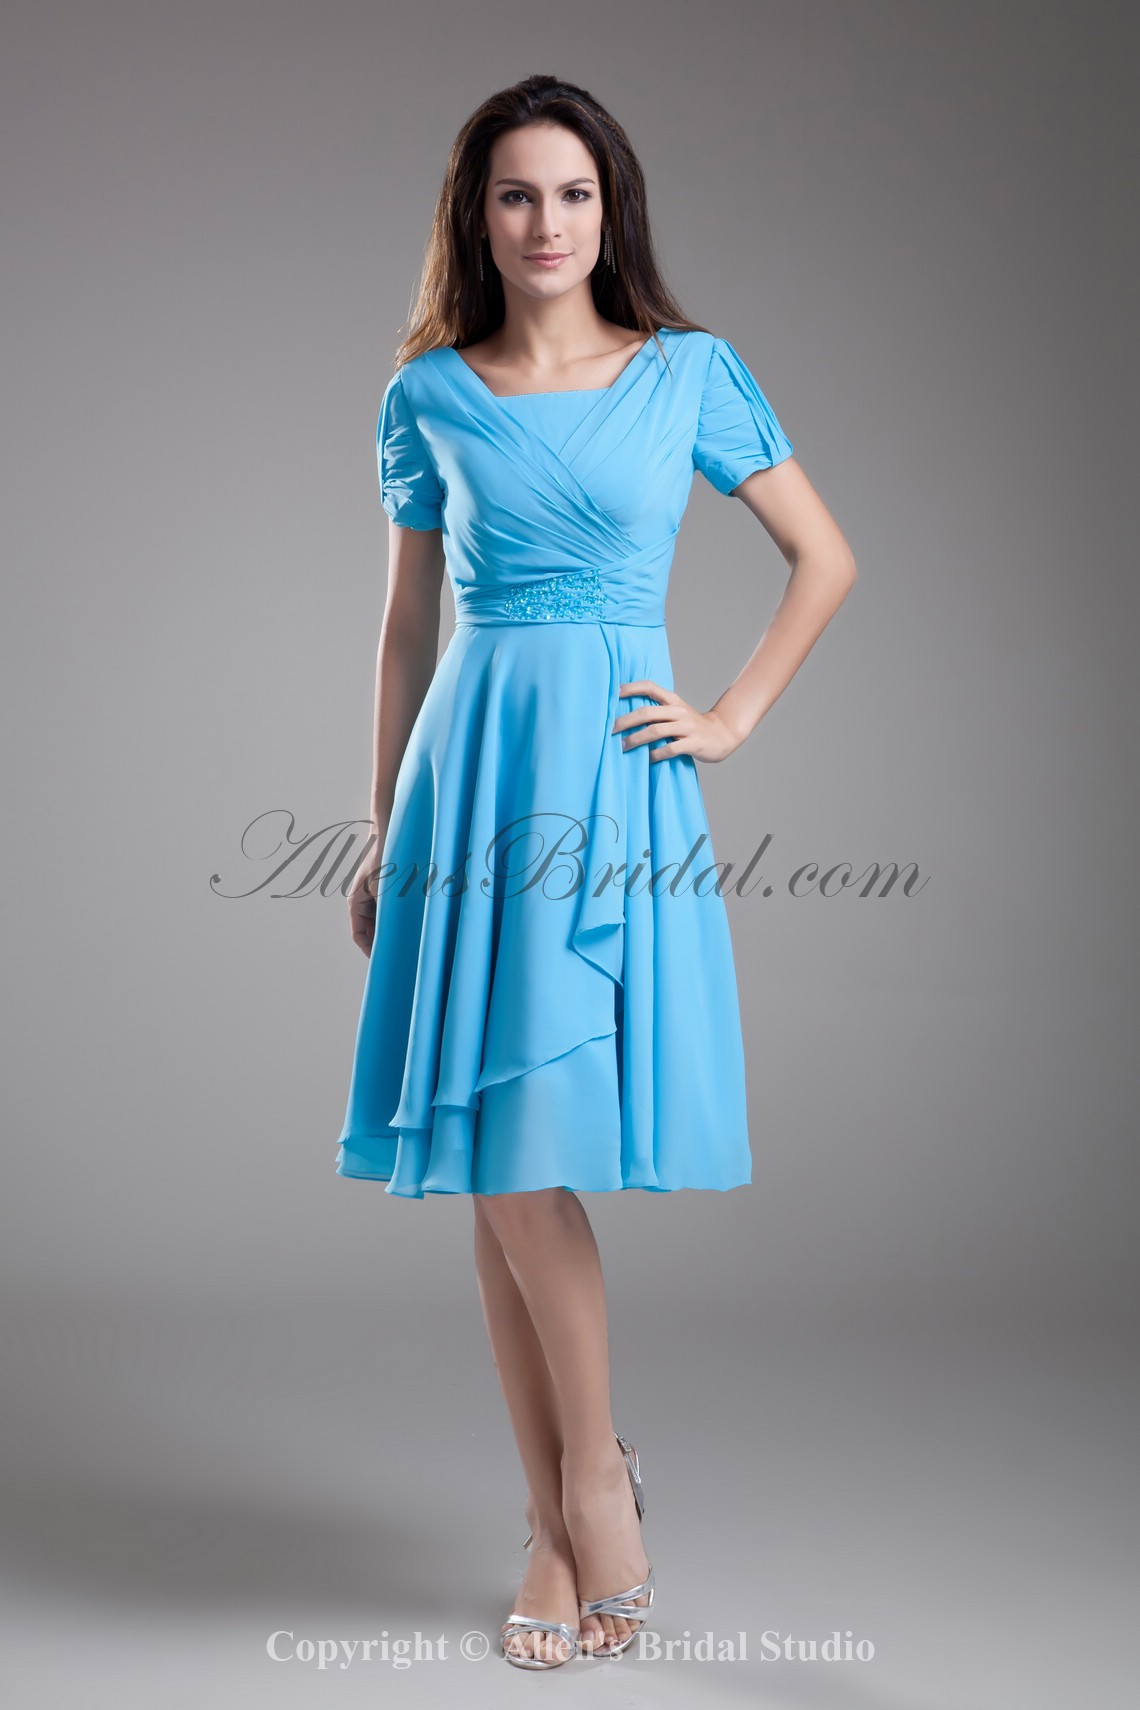 /673-5388/chiffon-square-knee-length-short-sleeves-a-line-cocktail-dress.jpg